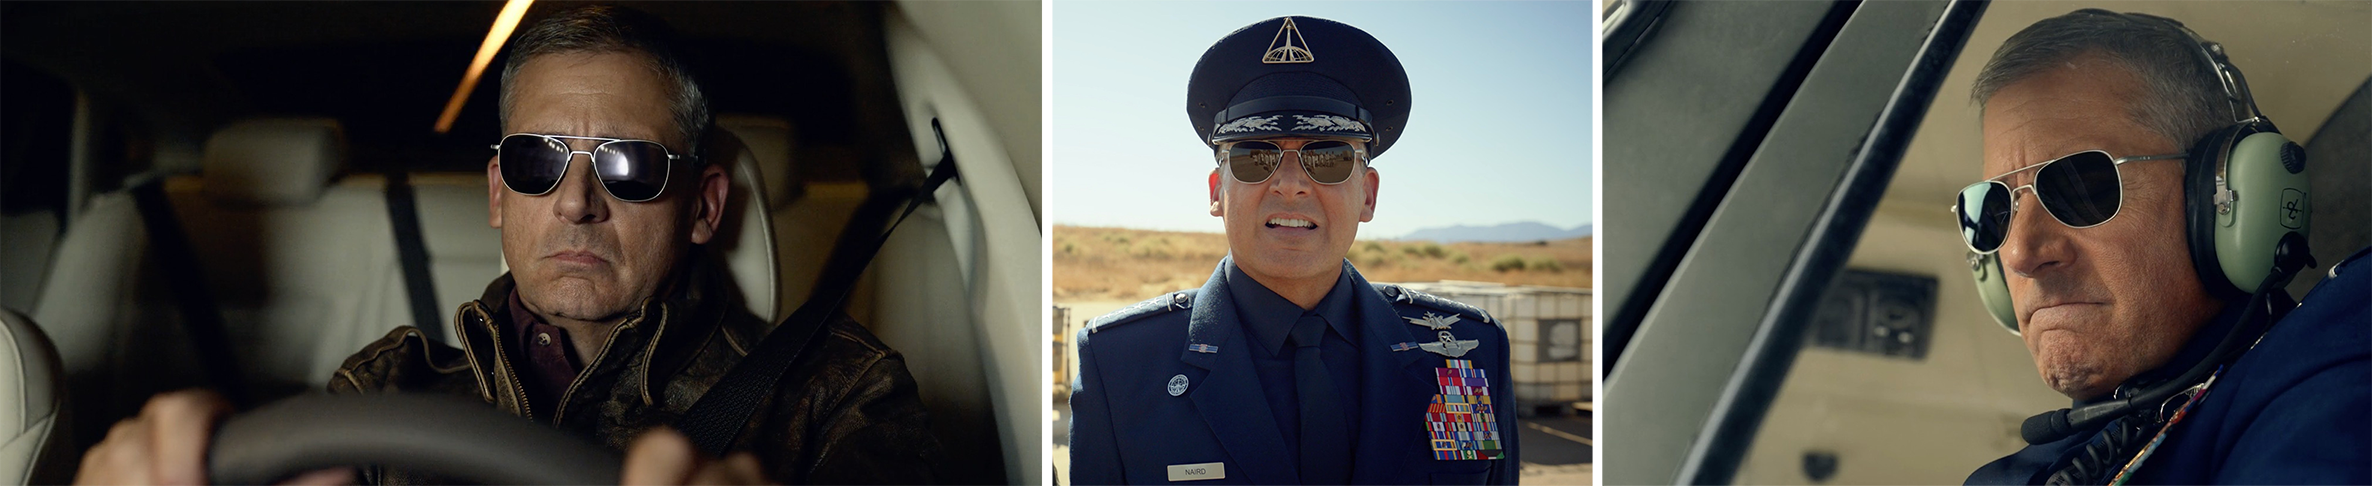 Randolph Engineering sunglasses product placement worn by Steve Carell in Netflix's SPACE FORCE